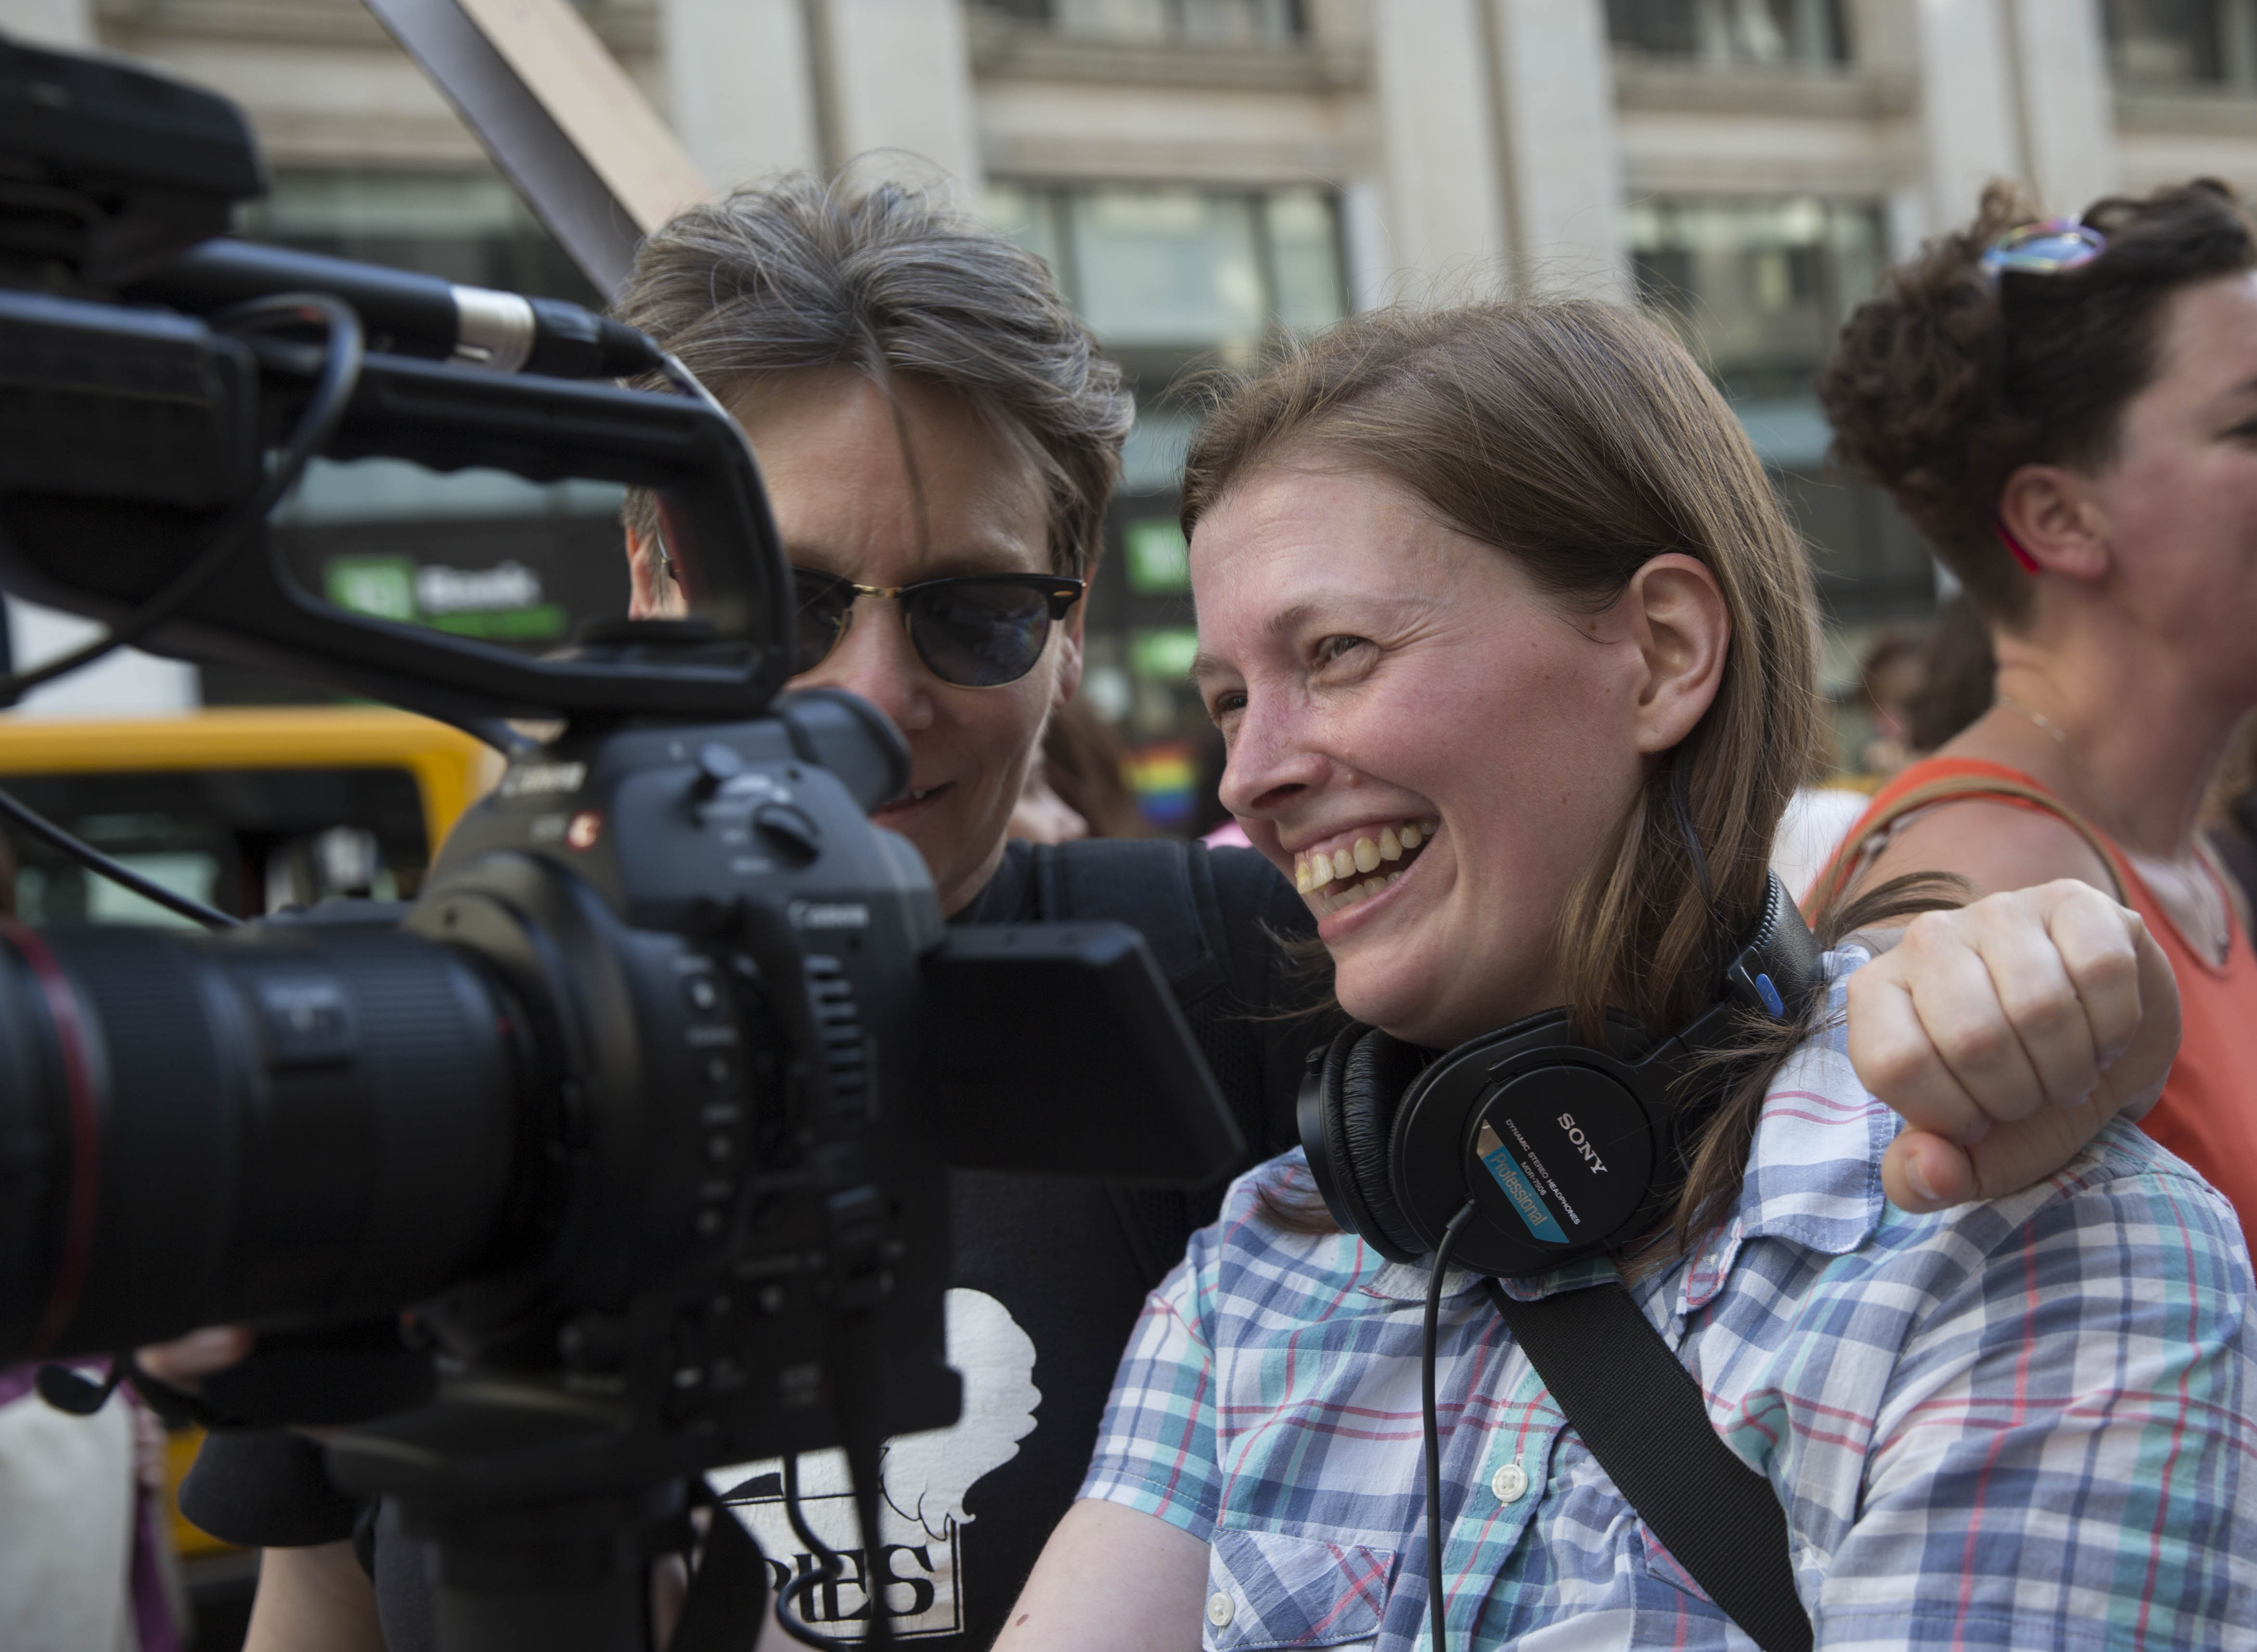 Megan Rossman director of The Archivettes behind the camera